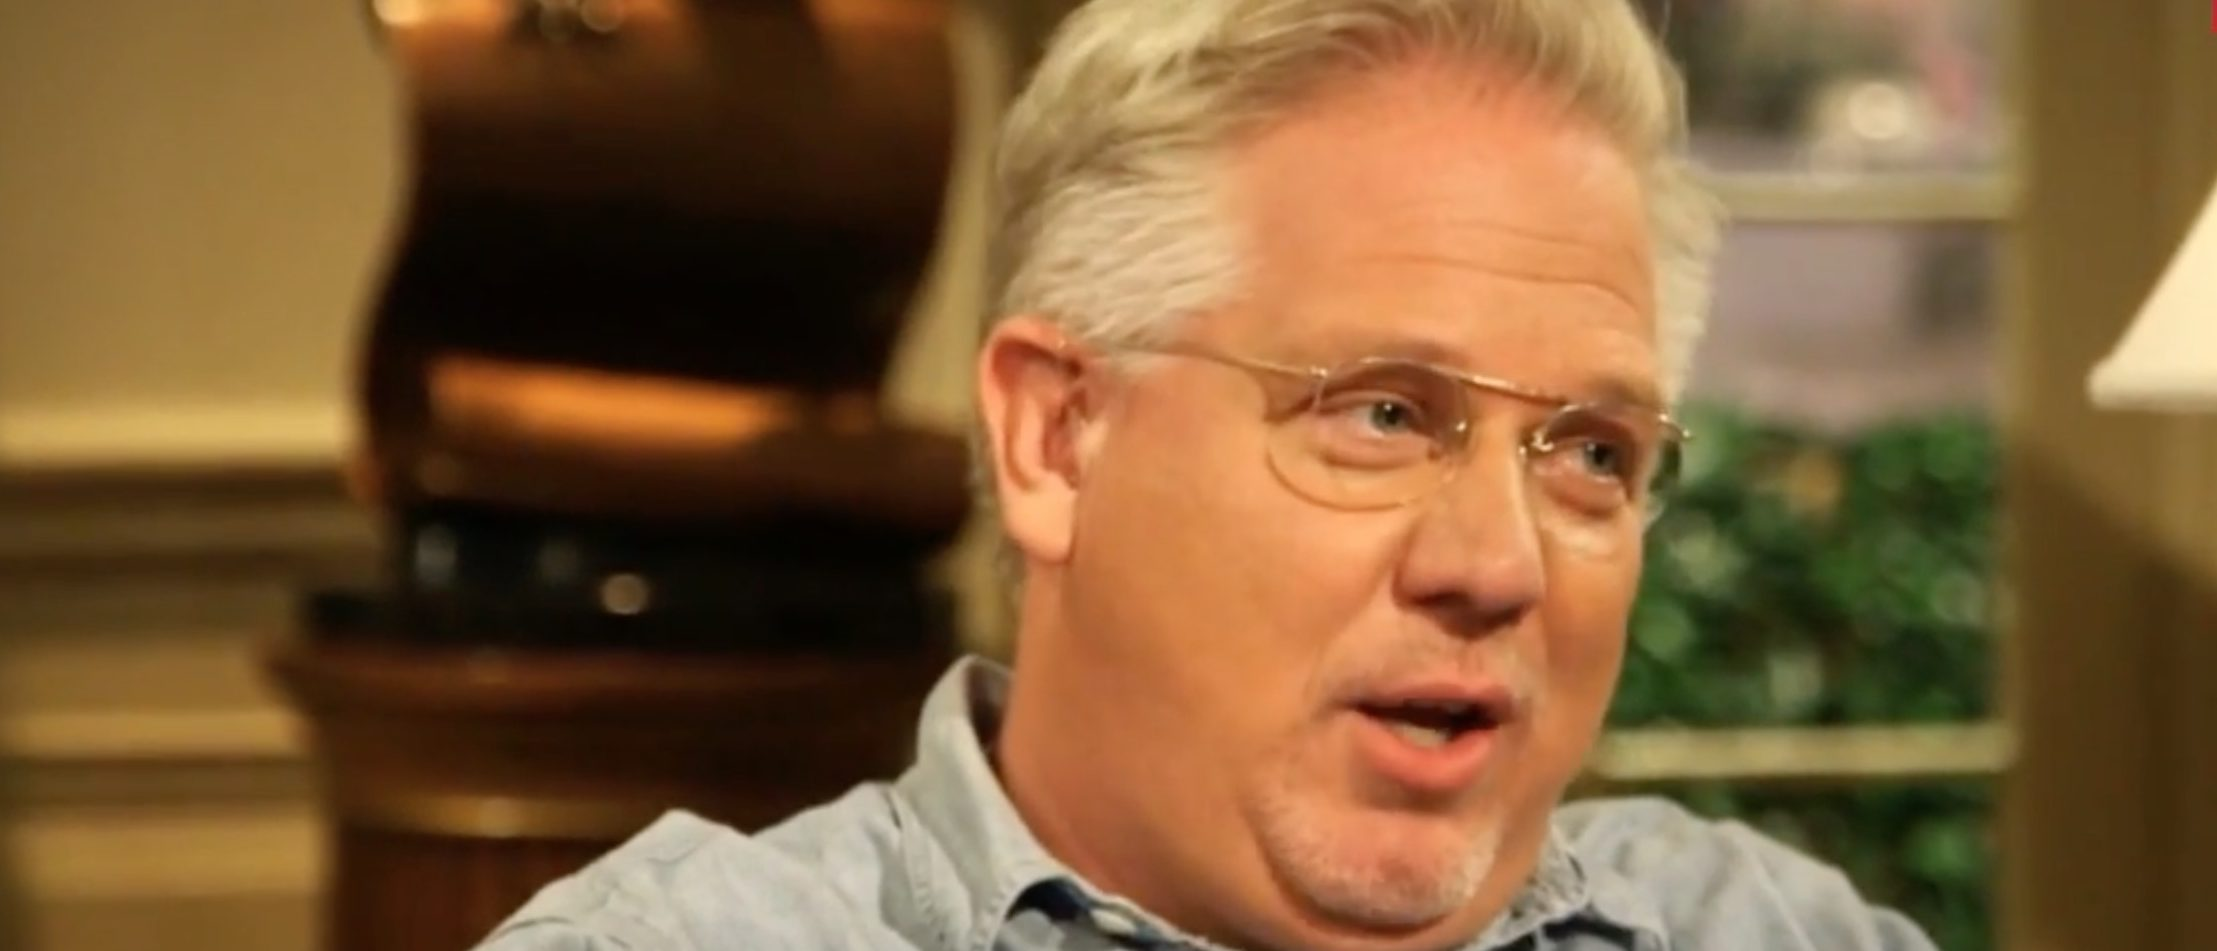 Glenn Beck, Screen Grab YouTube, 7-14-2016